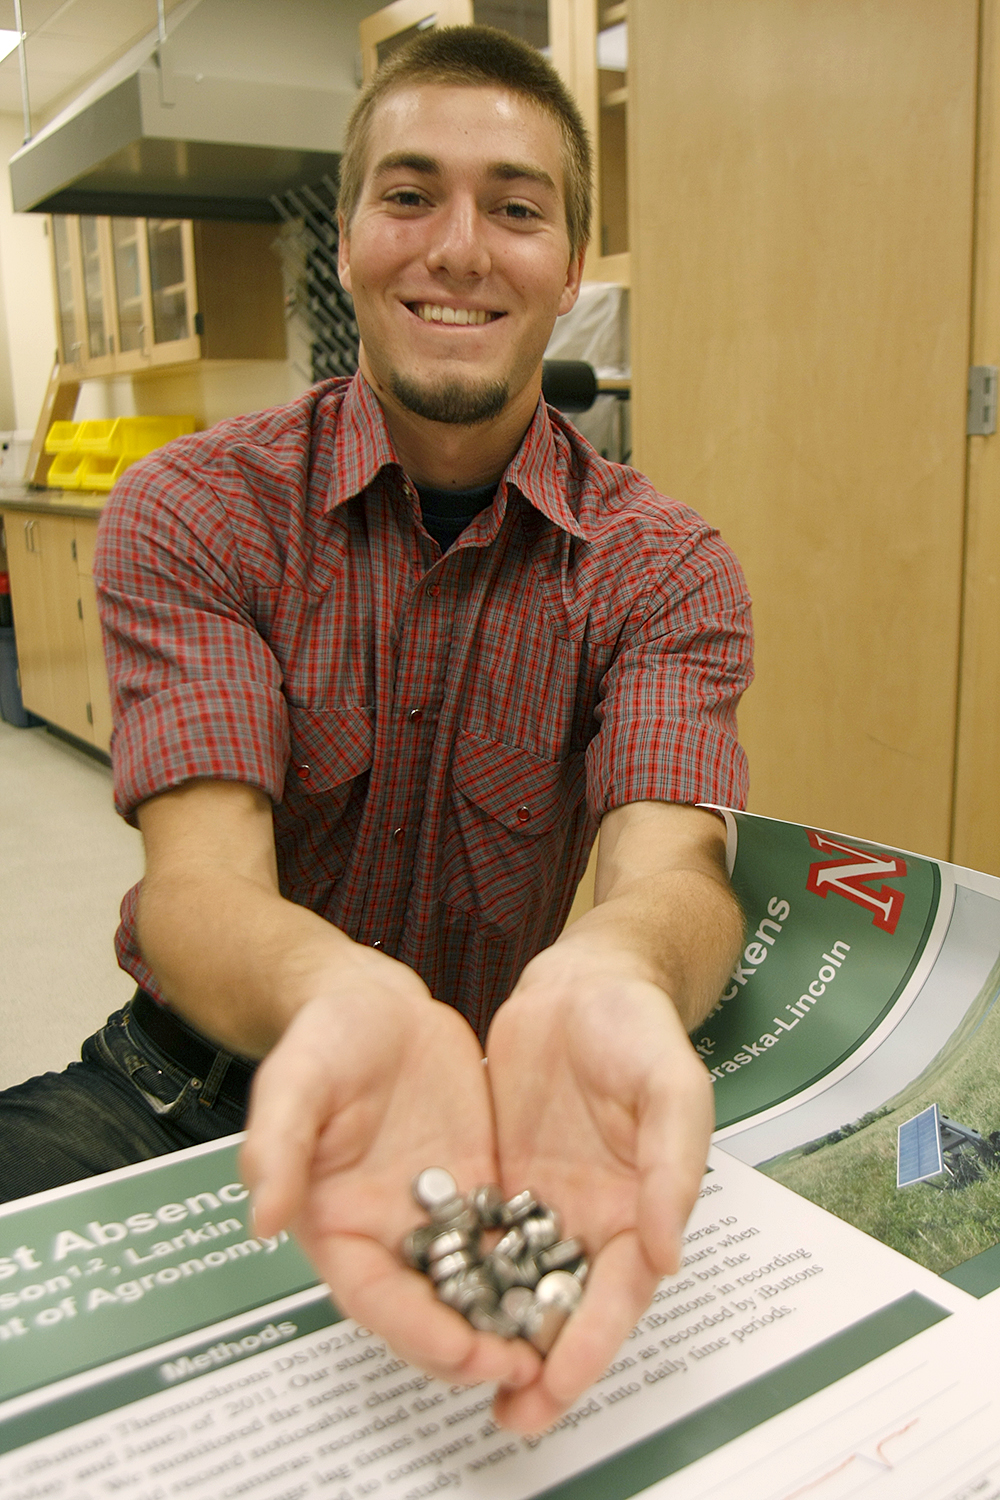 Josiah Dallmann, 20, won the Life Sciences poster competition recently for his work with small temperature sensors, or iButtons, that helped him track the nesting habits of prairie chickens in the Nebraska Sandhills.